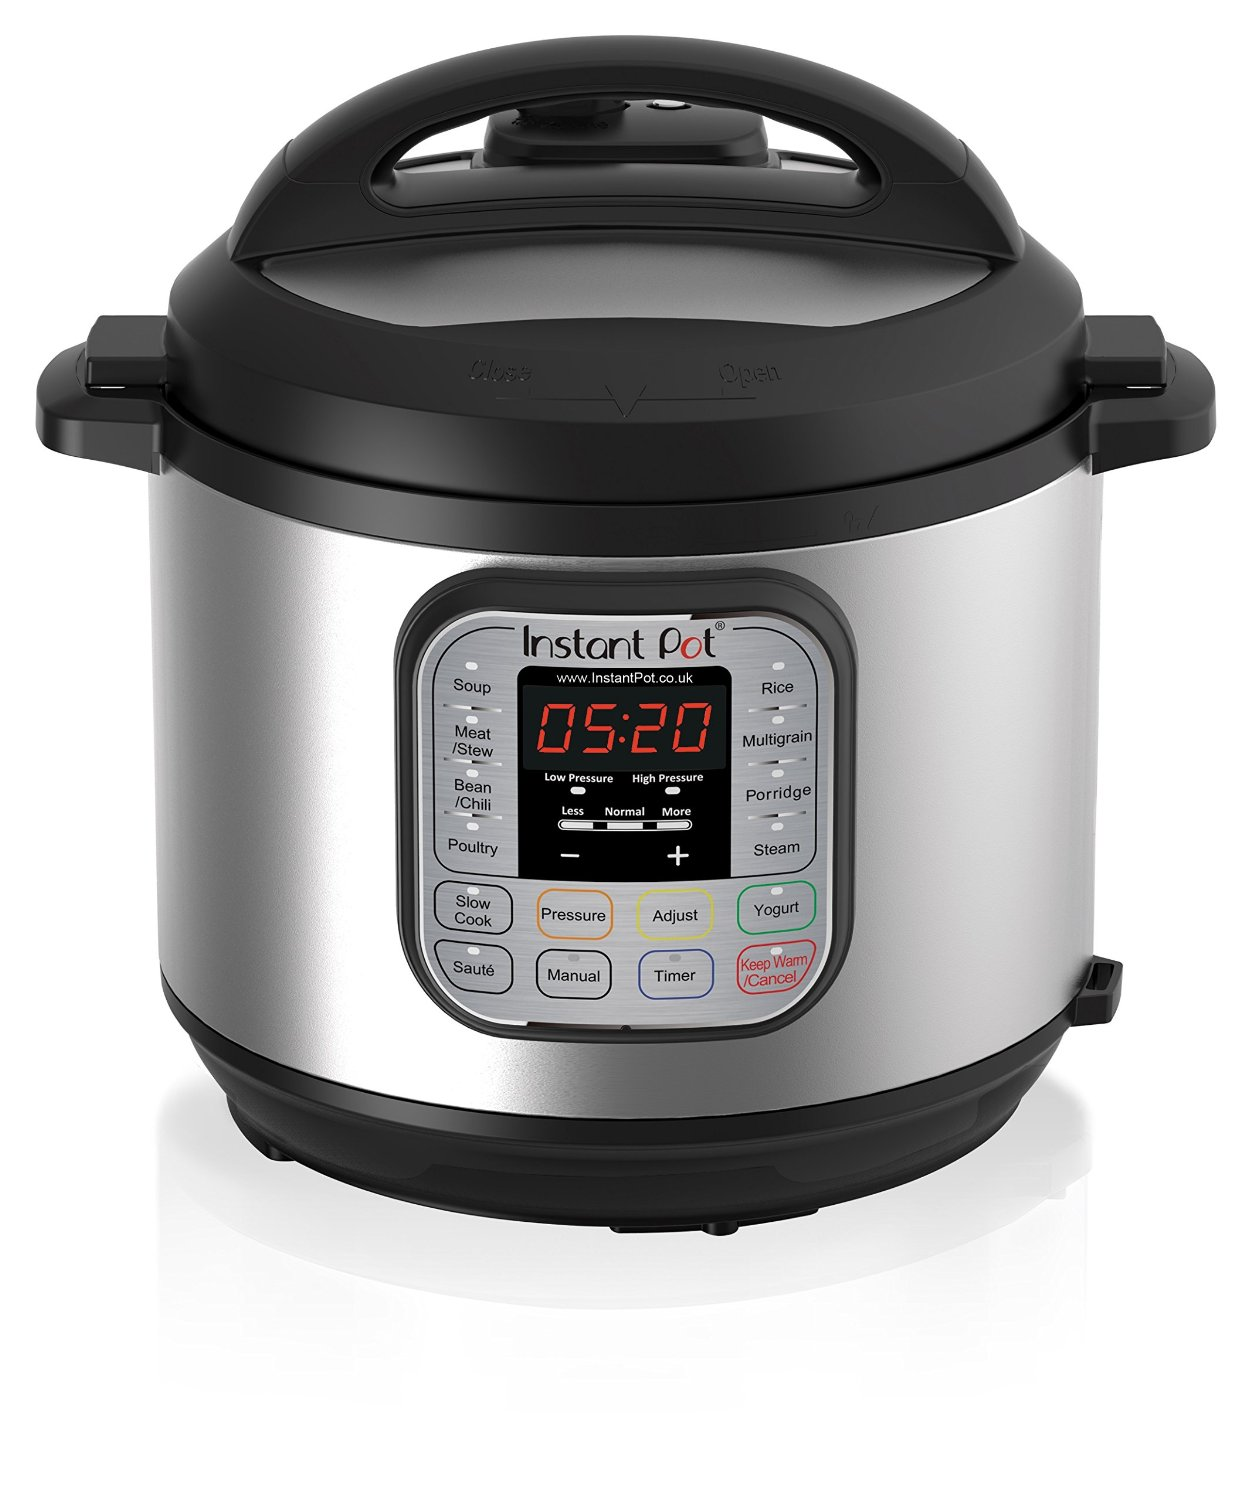 Best Electric-Pressure Cooker -Best Electric-Pressure Cooker